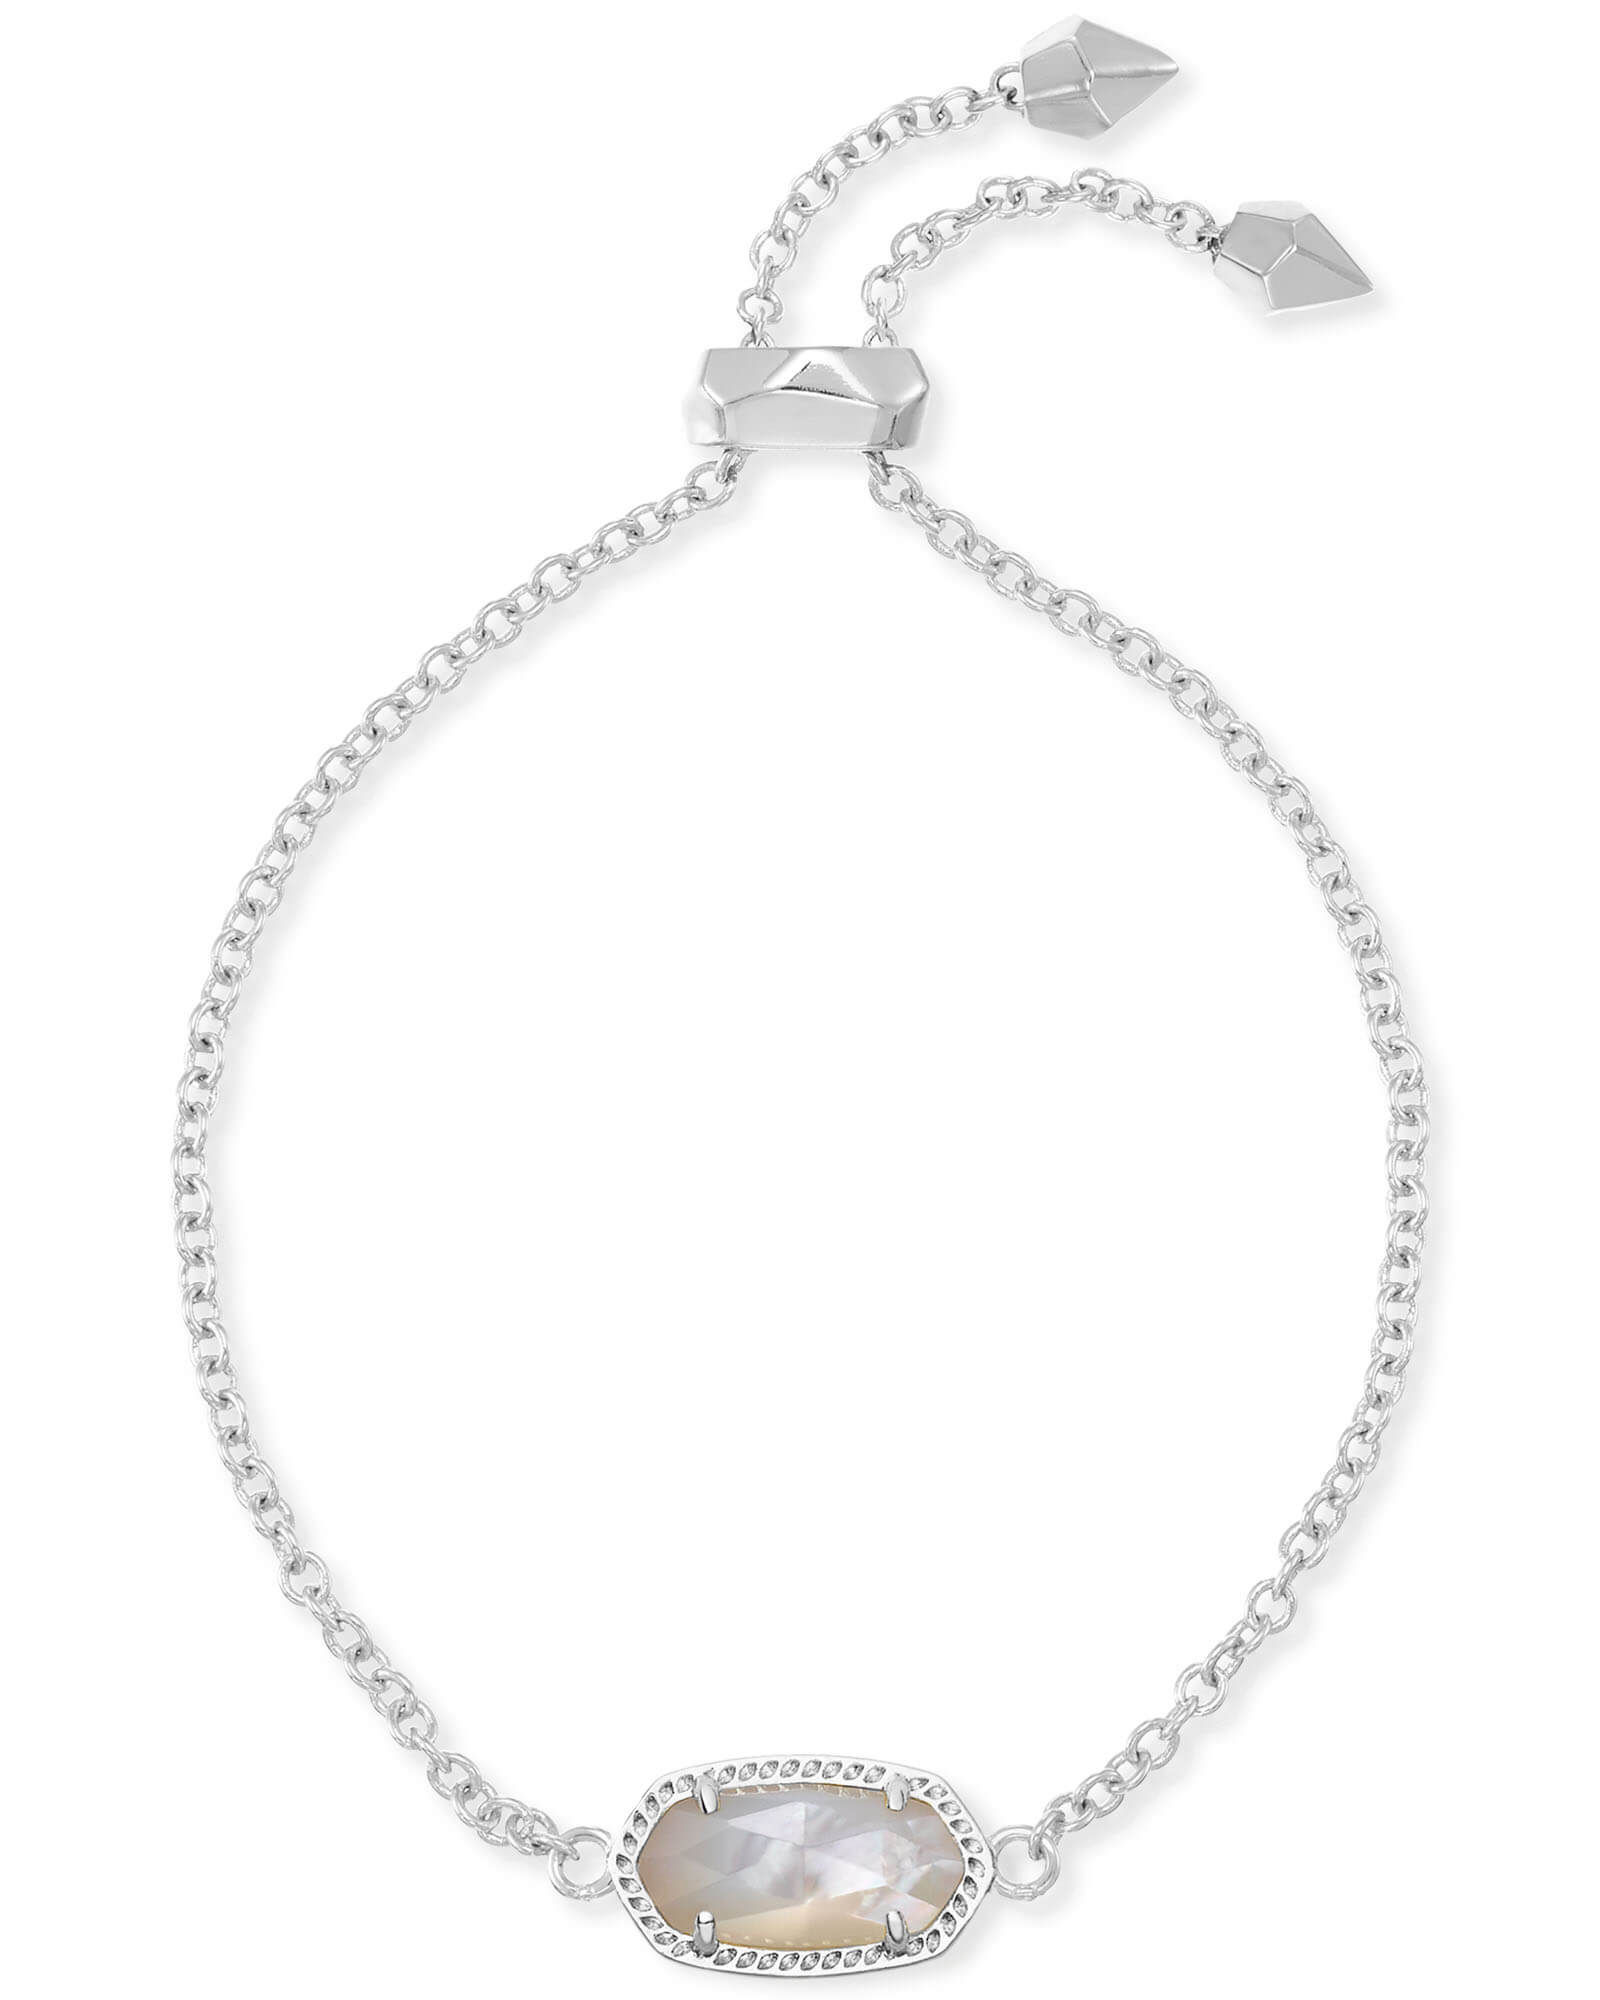 Elaina Silver Adjustable Chain Bracelet in Ivory Pearl